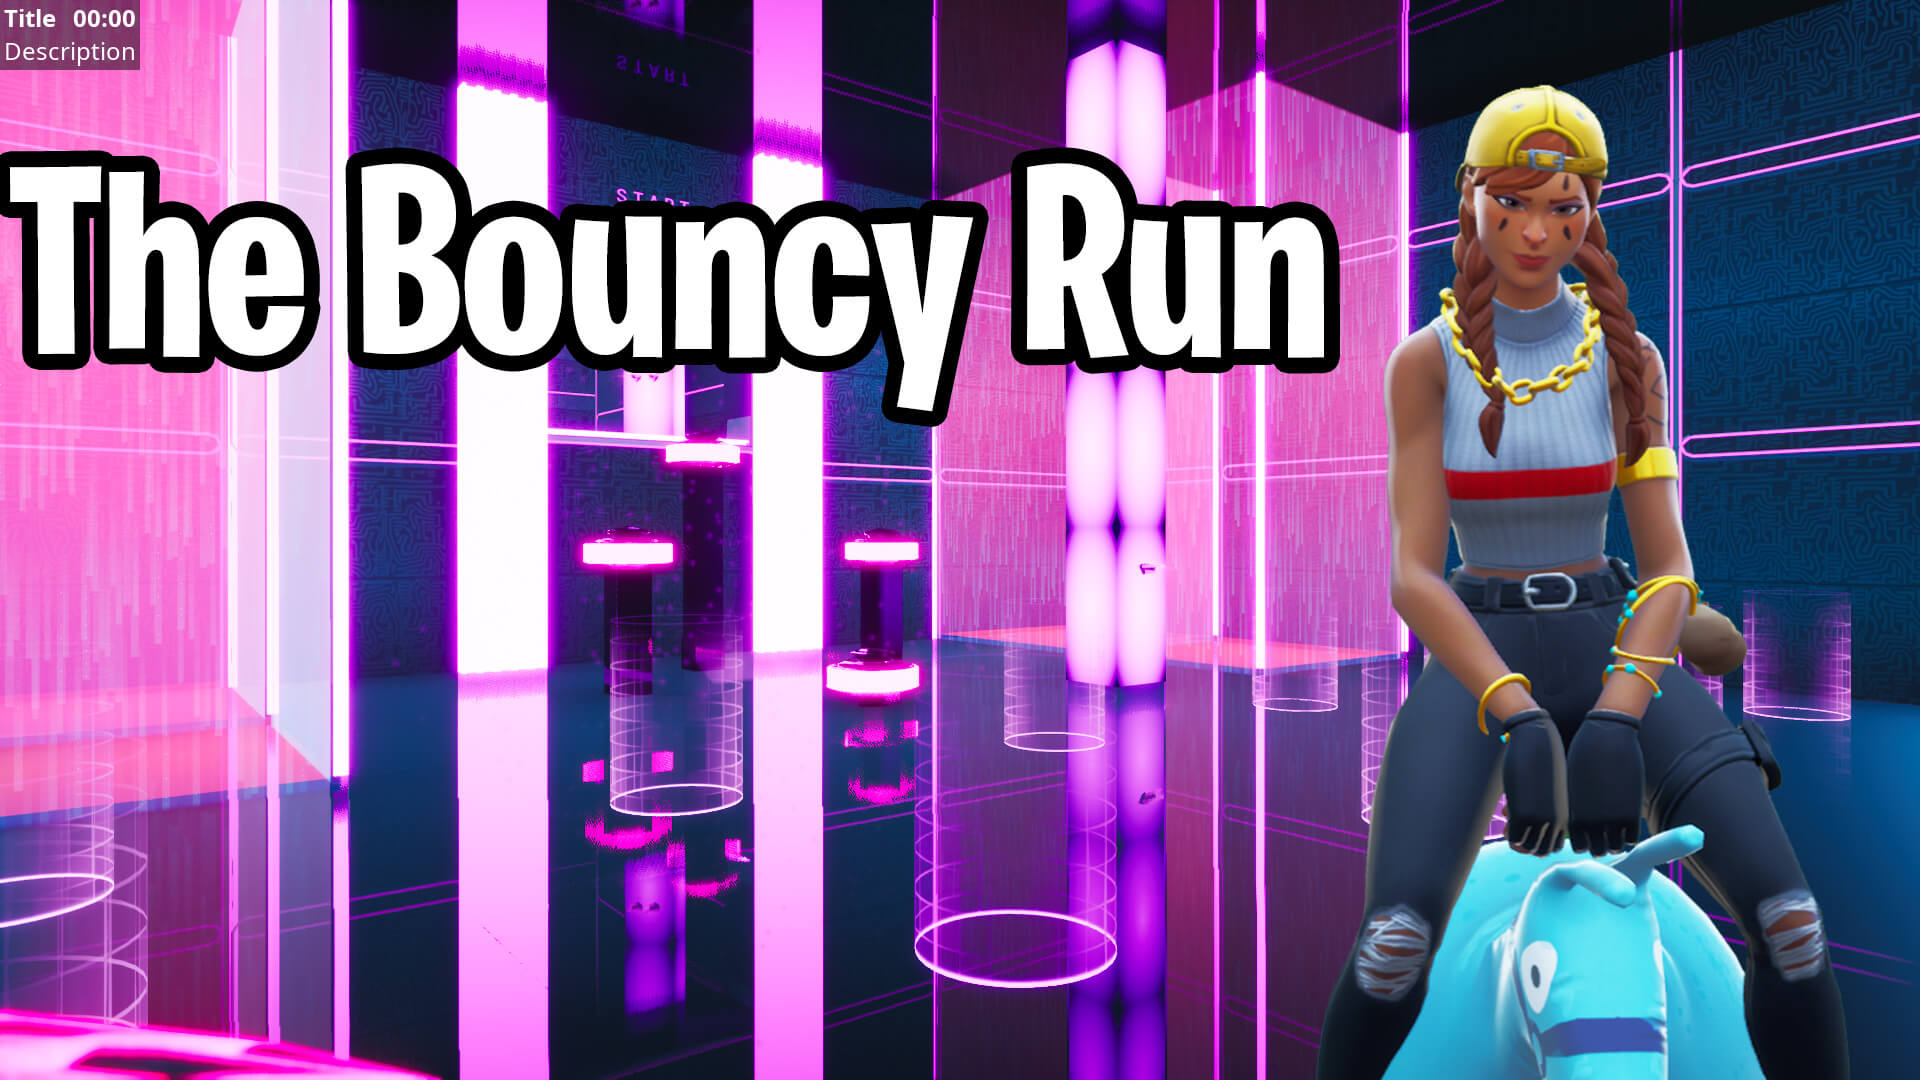 THE BOUNCY RUN